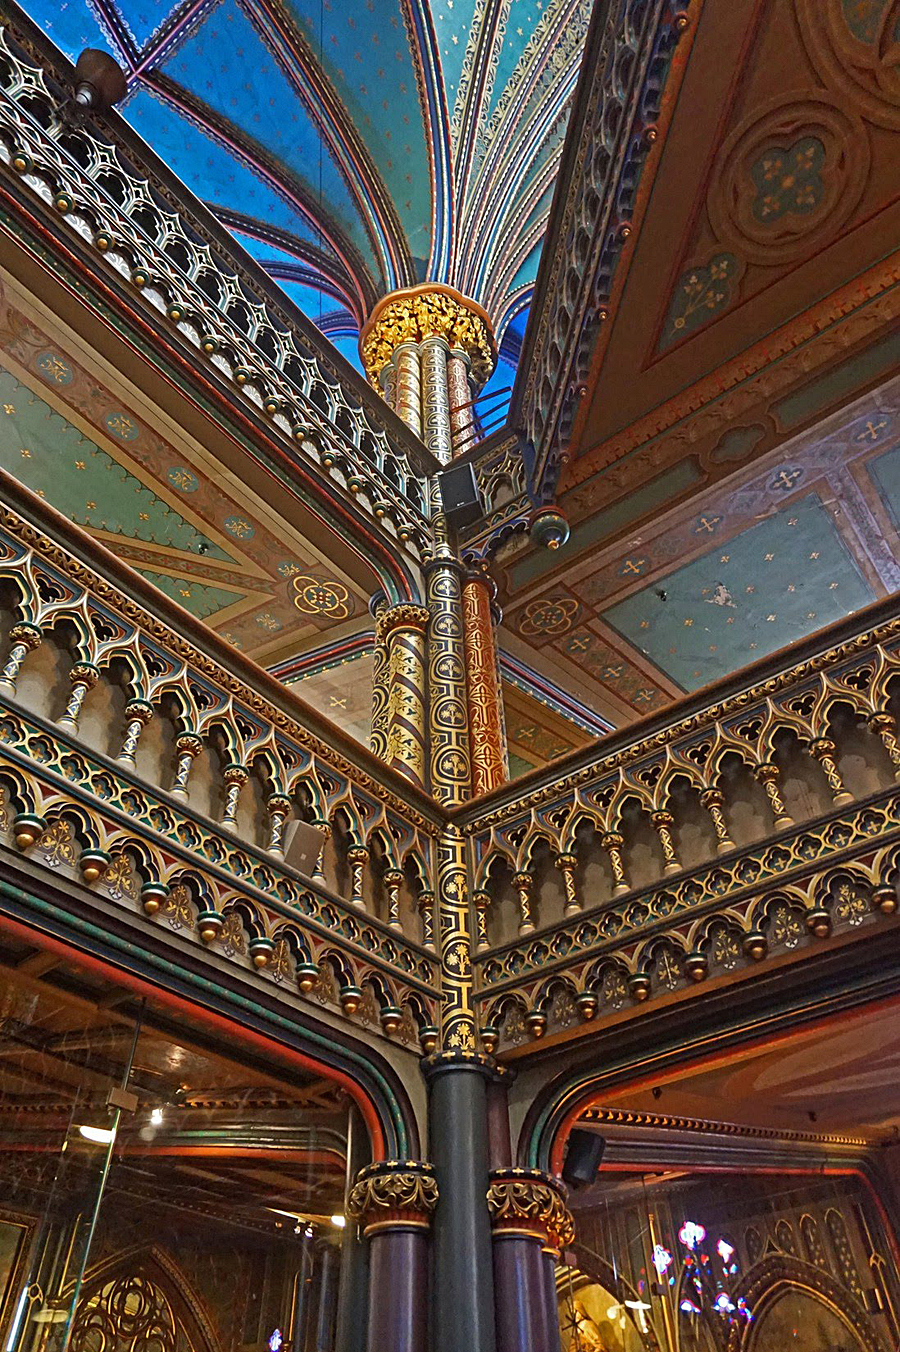 A road trip to the Province of Quebec. Detailed woodwork in Notre Dame Basilica of Montreal.